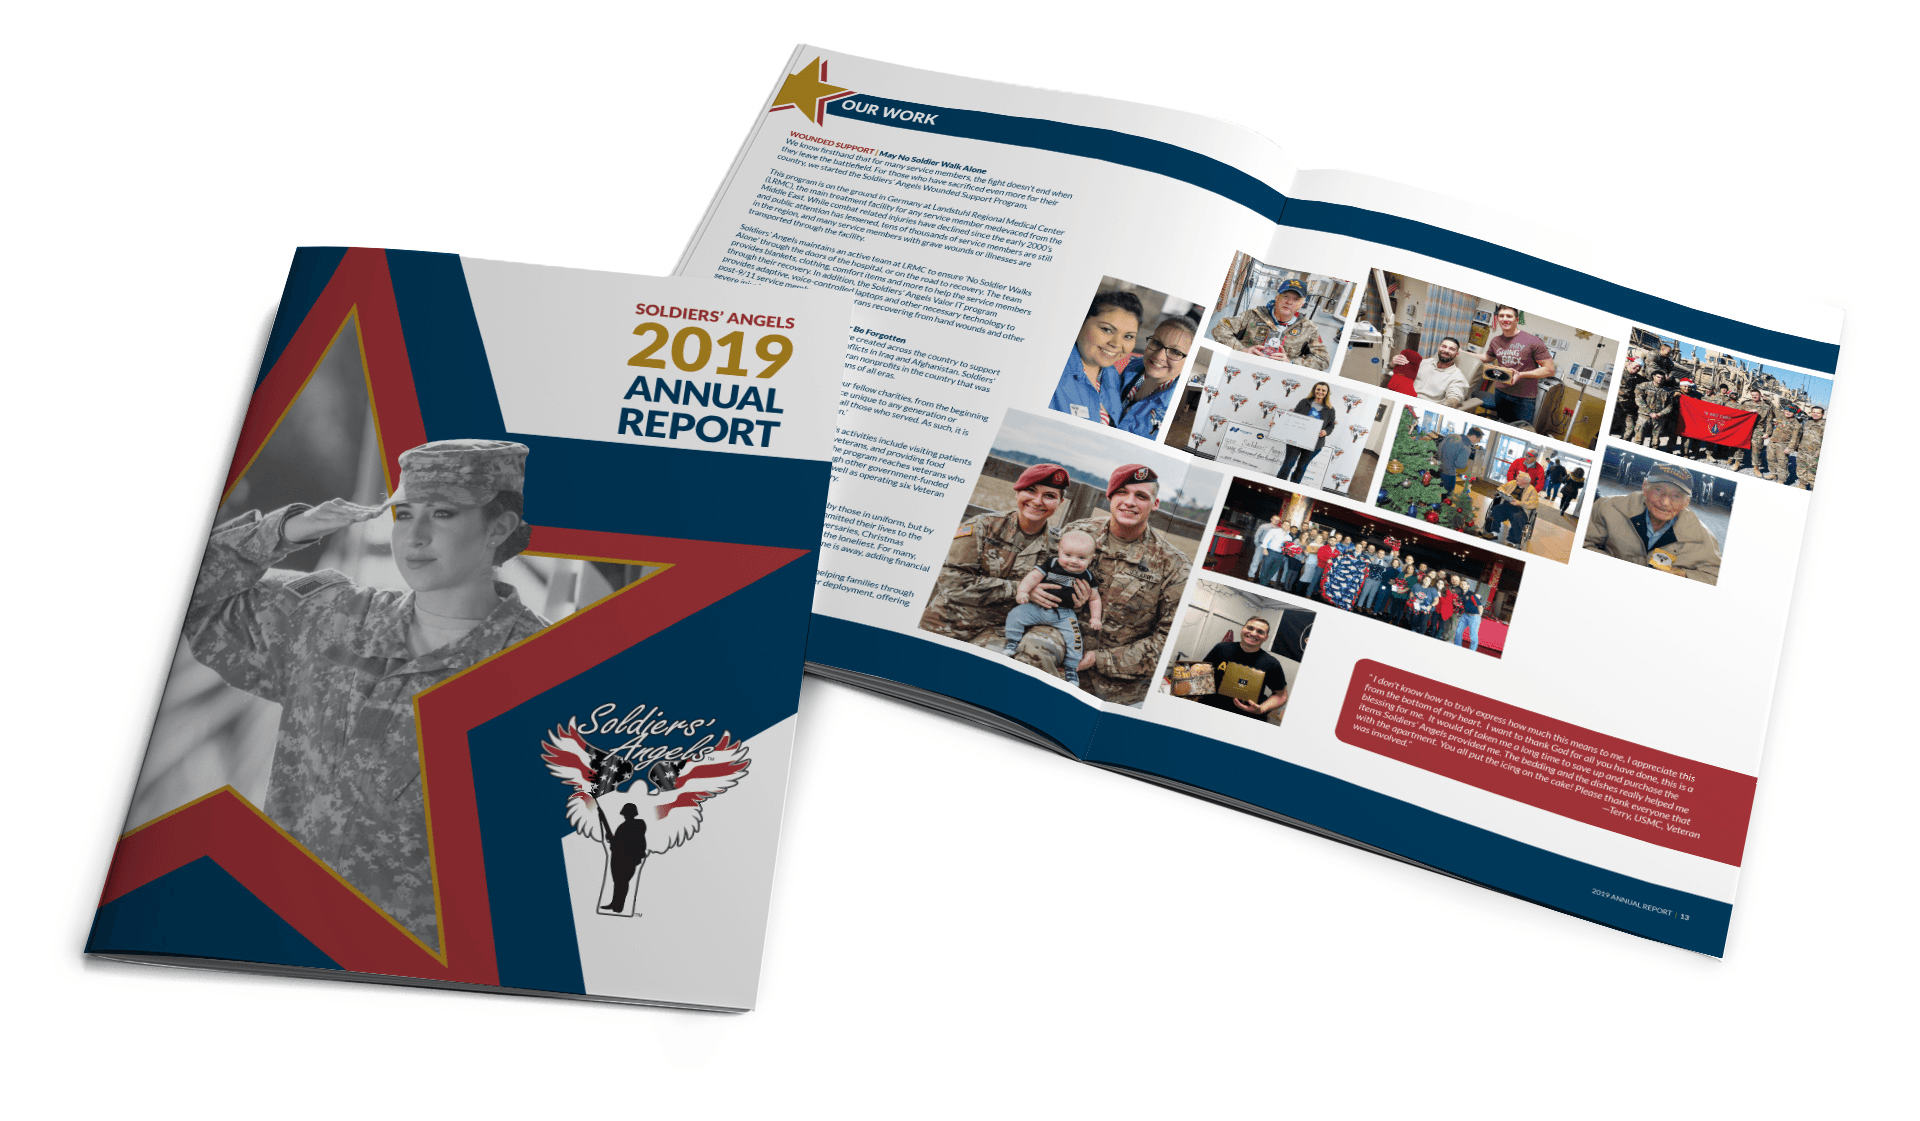 Soliders' Angels Annual Report